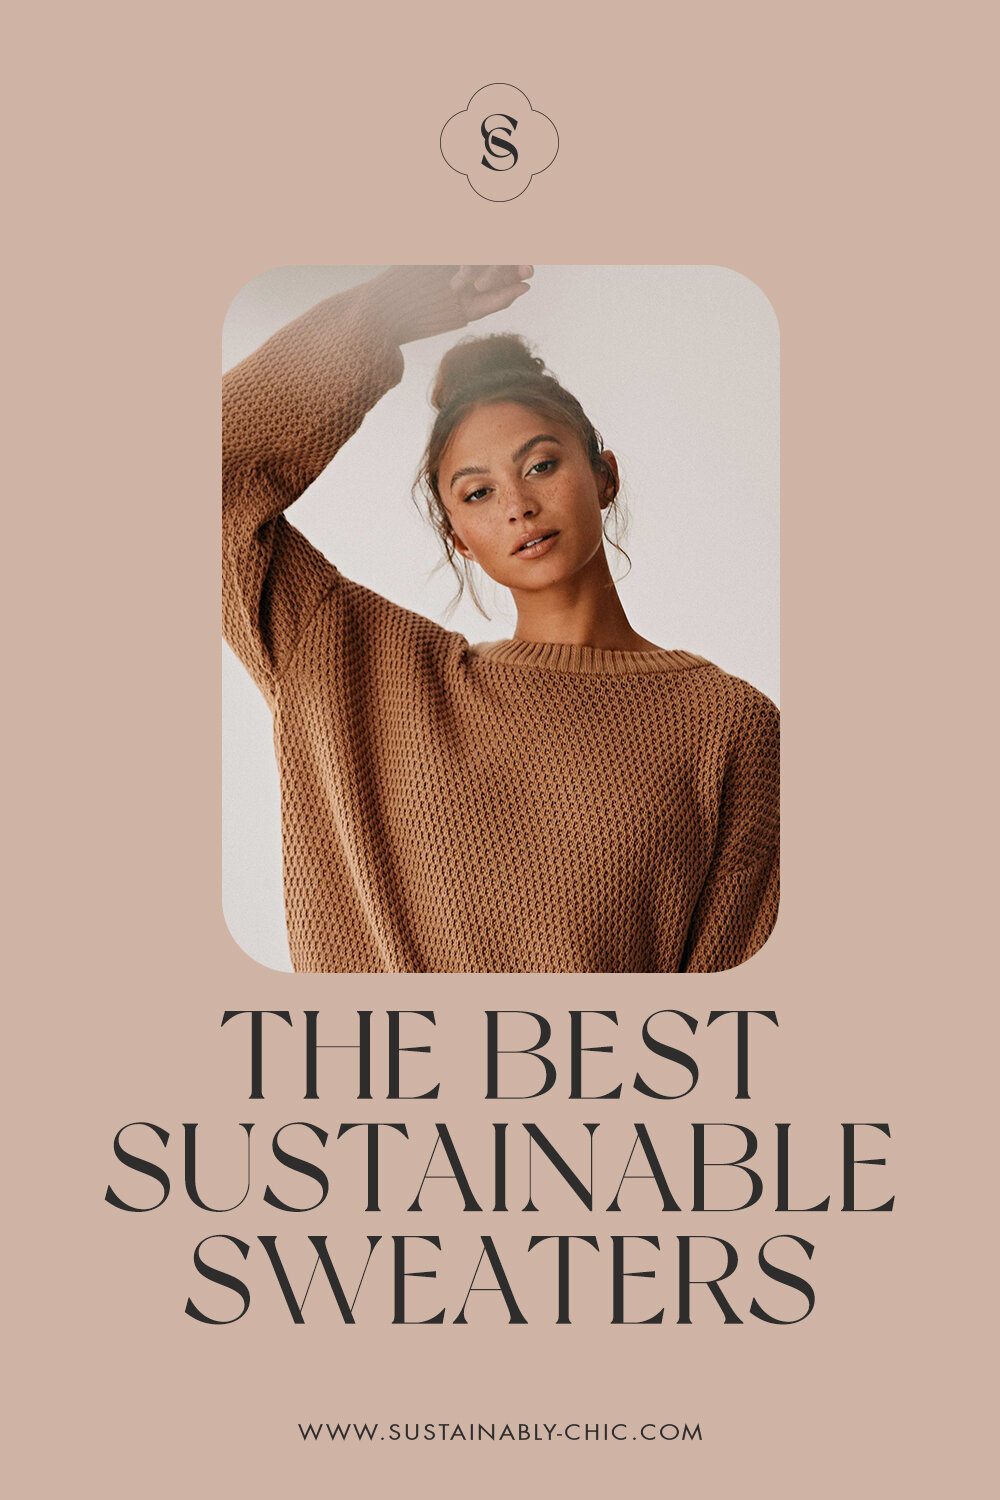 Sustainably Chic | Sustainable Fashion Blog | The Coziest Sustainable Sweaters.jpg